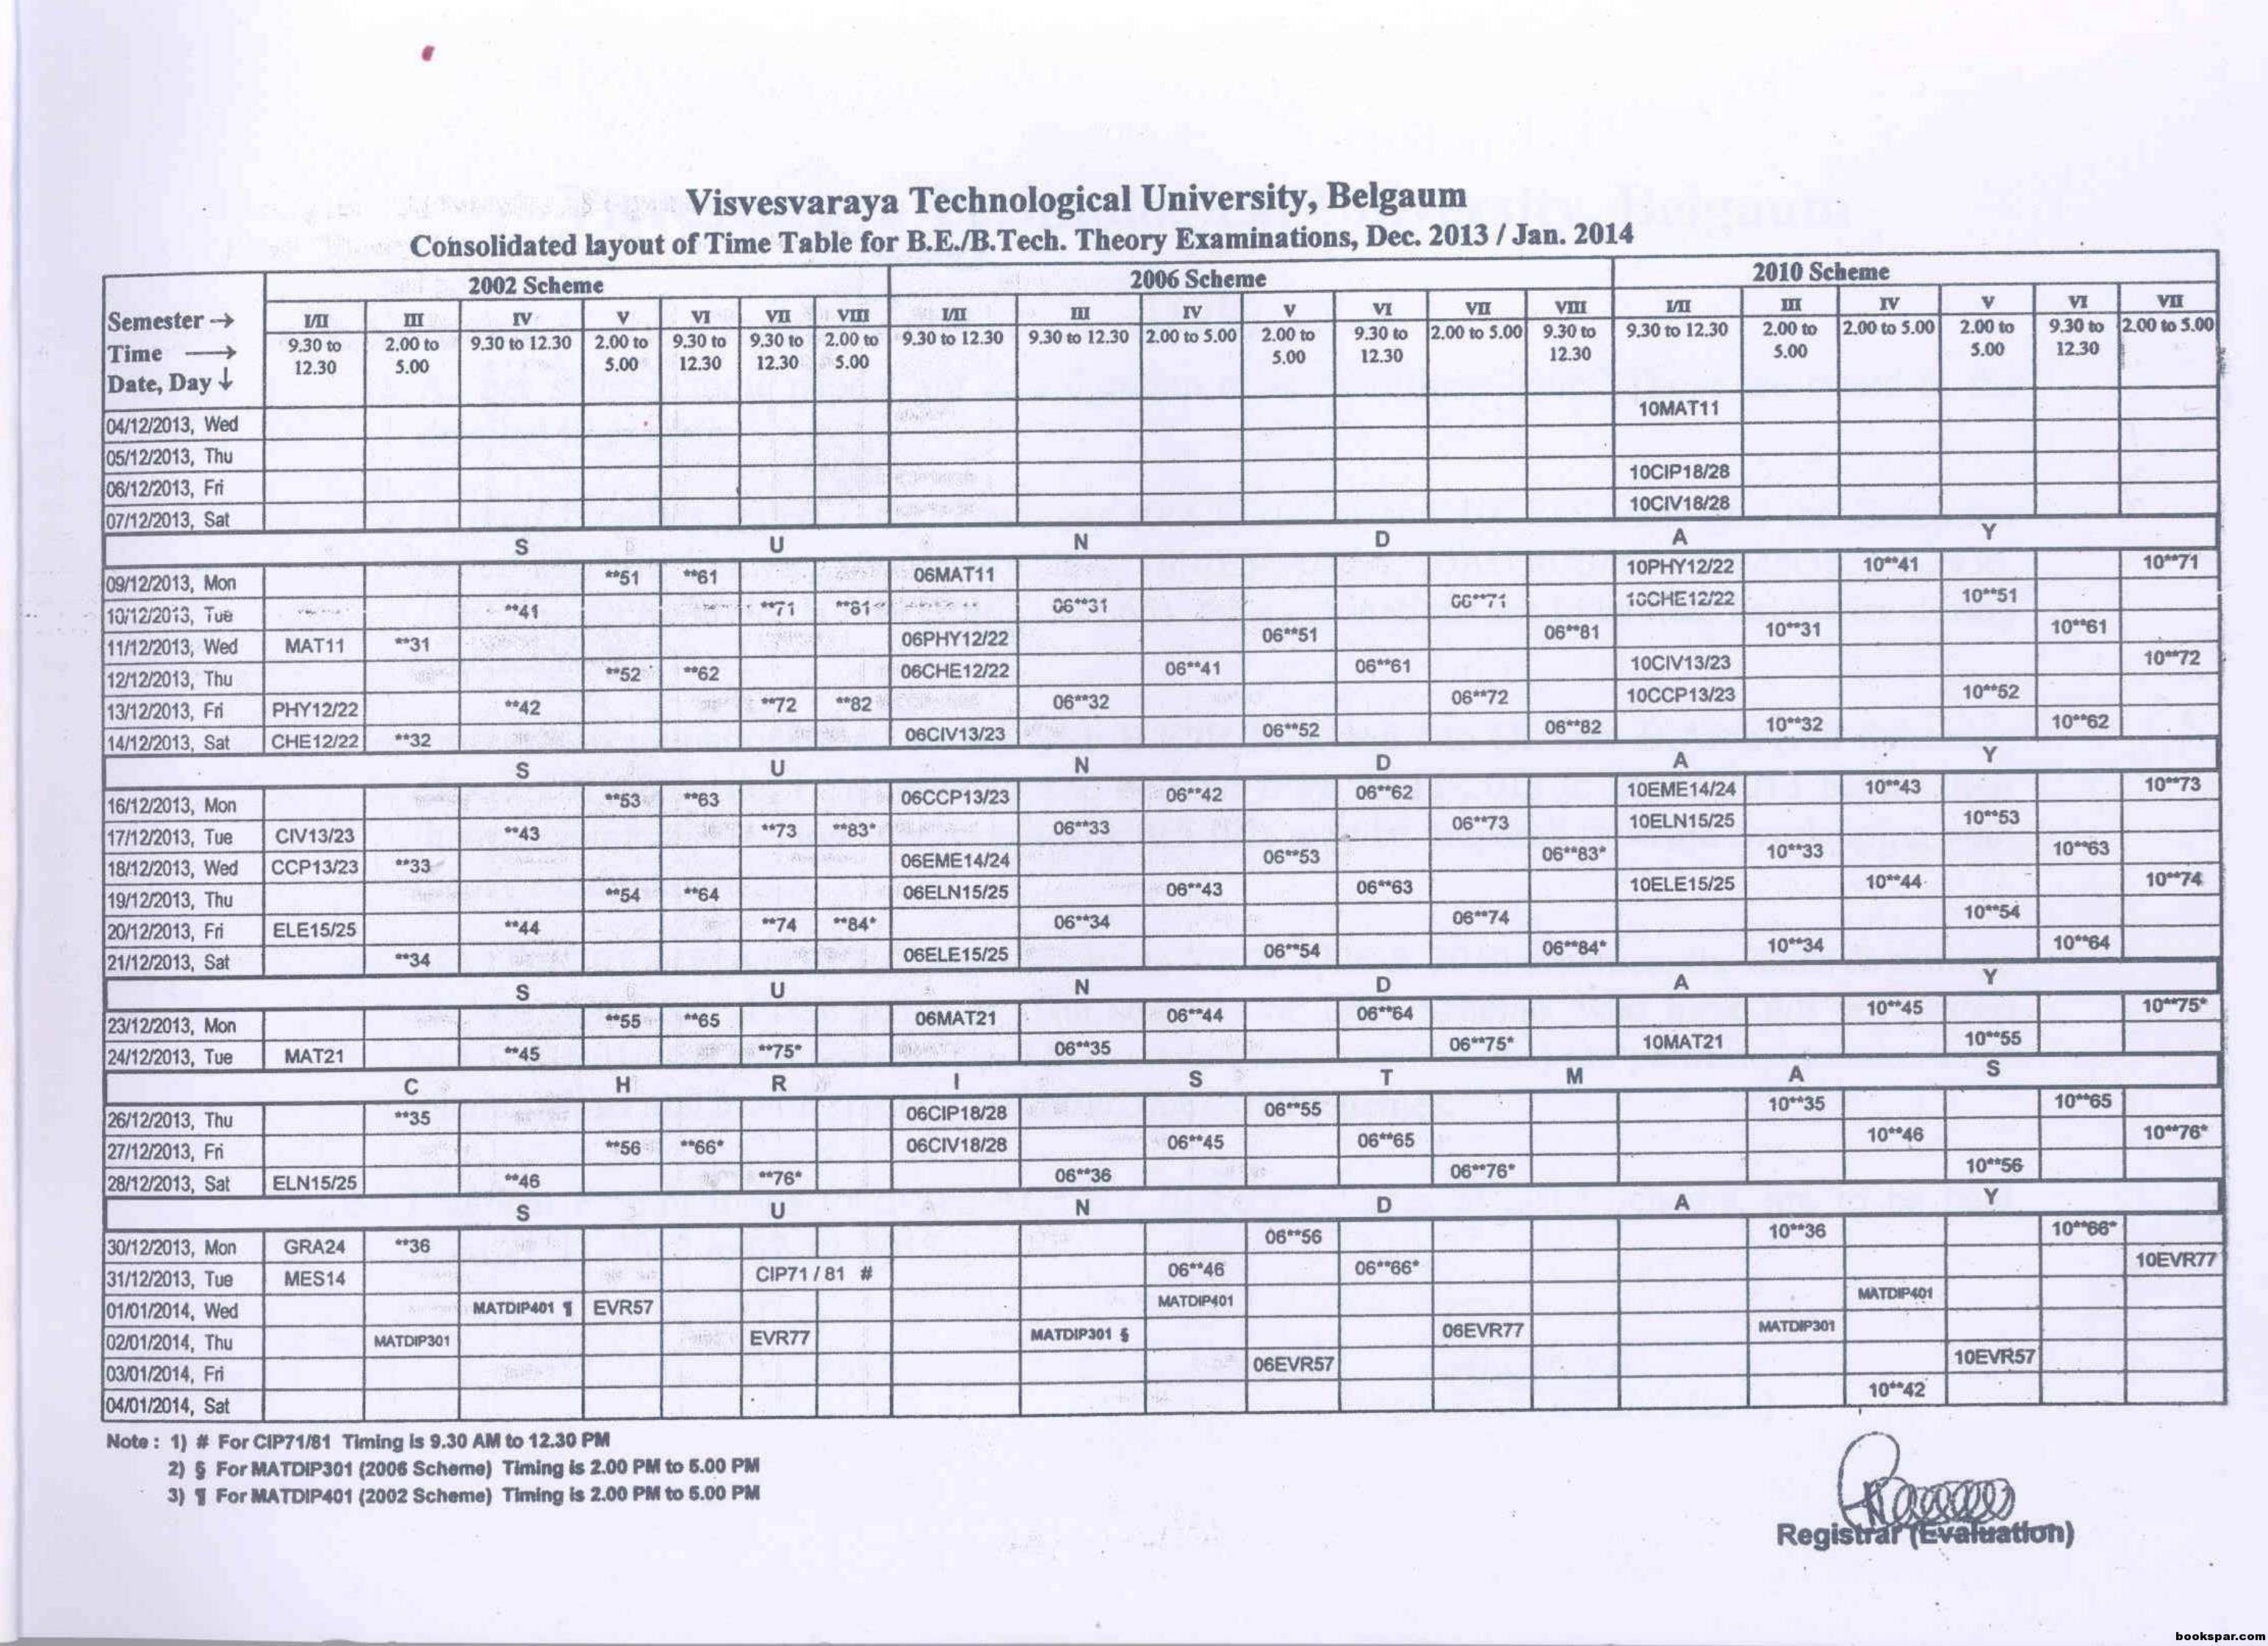 Vtu consolidated timetable for all semesters december 2013 for Bu time table 5th sem